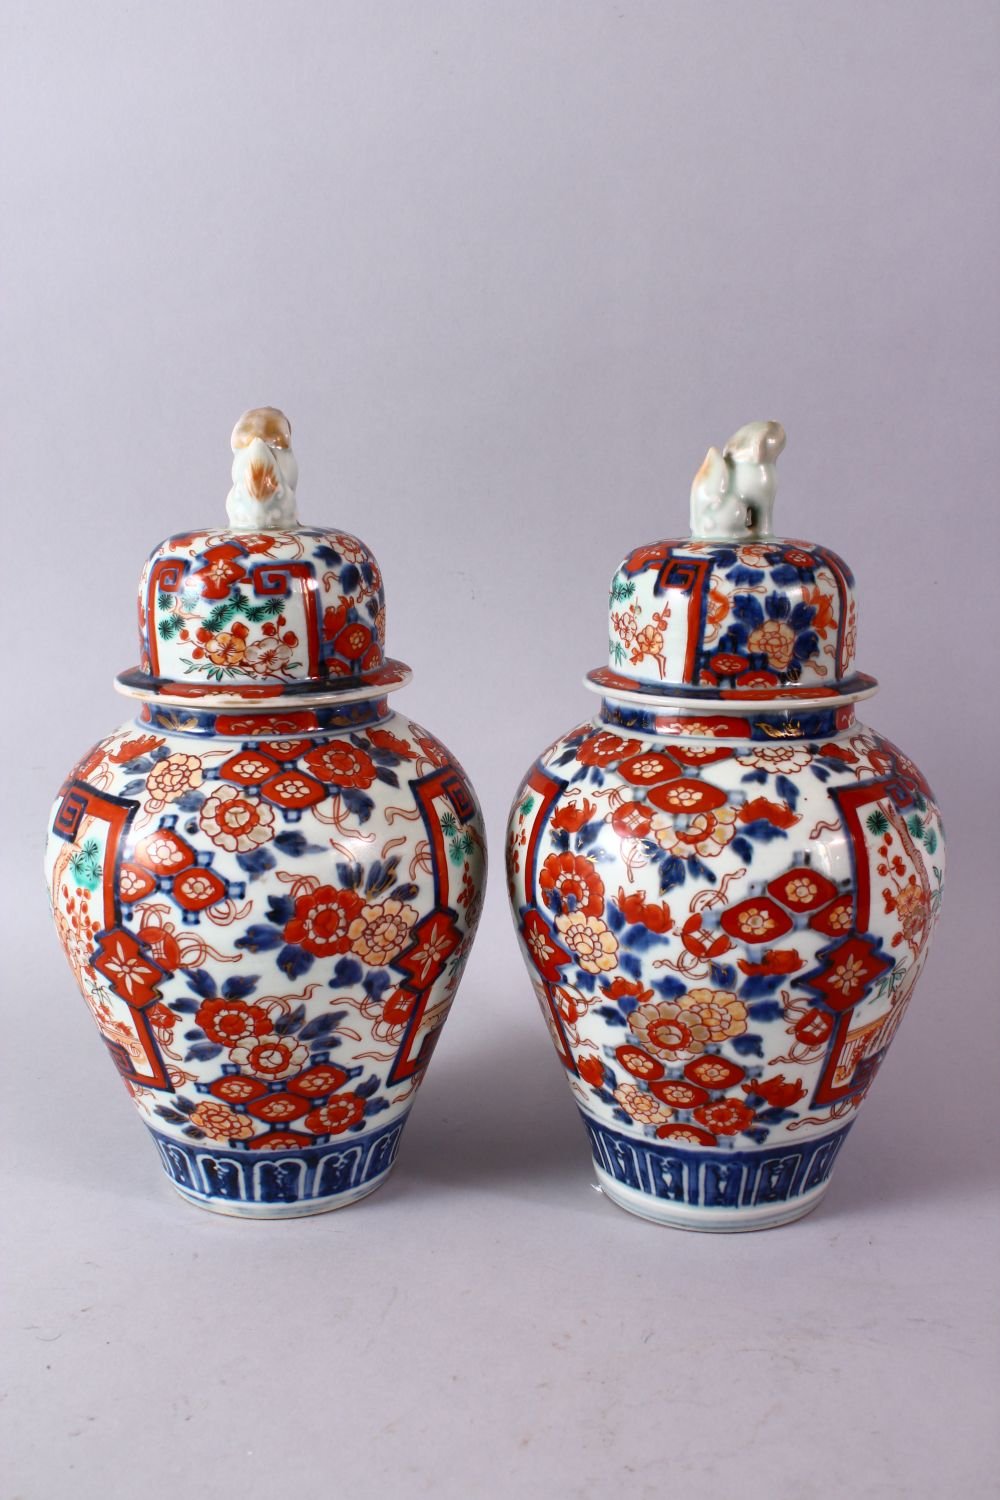 A PAIR OF MEIJI PERIOD IMARI VASES AND COVERS, with kylin finials, overall 30cm high. - Image 5 of 10